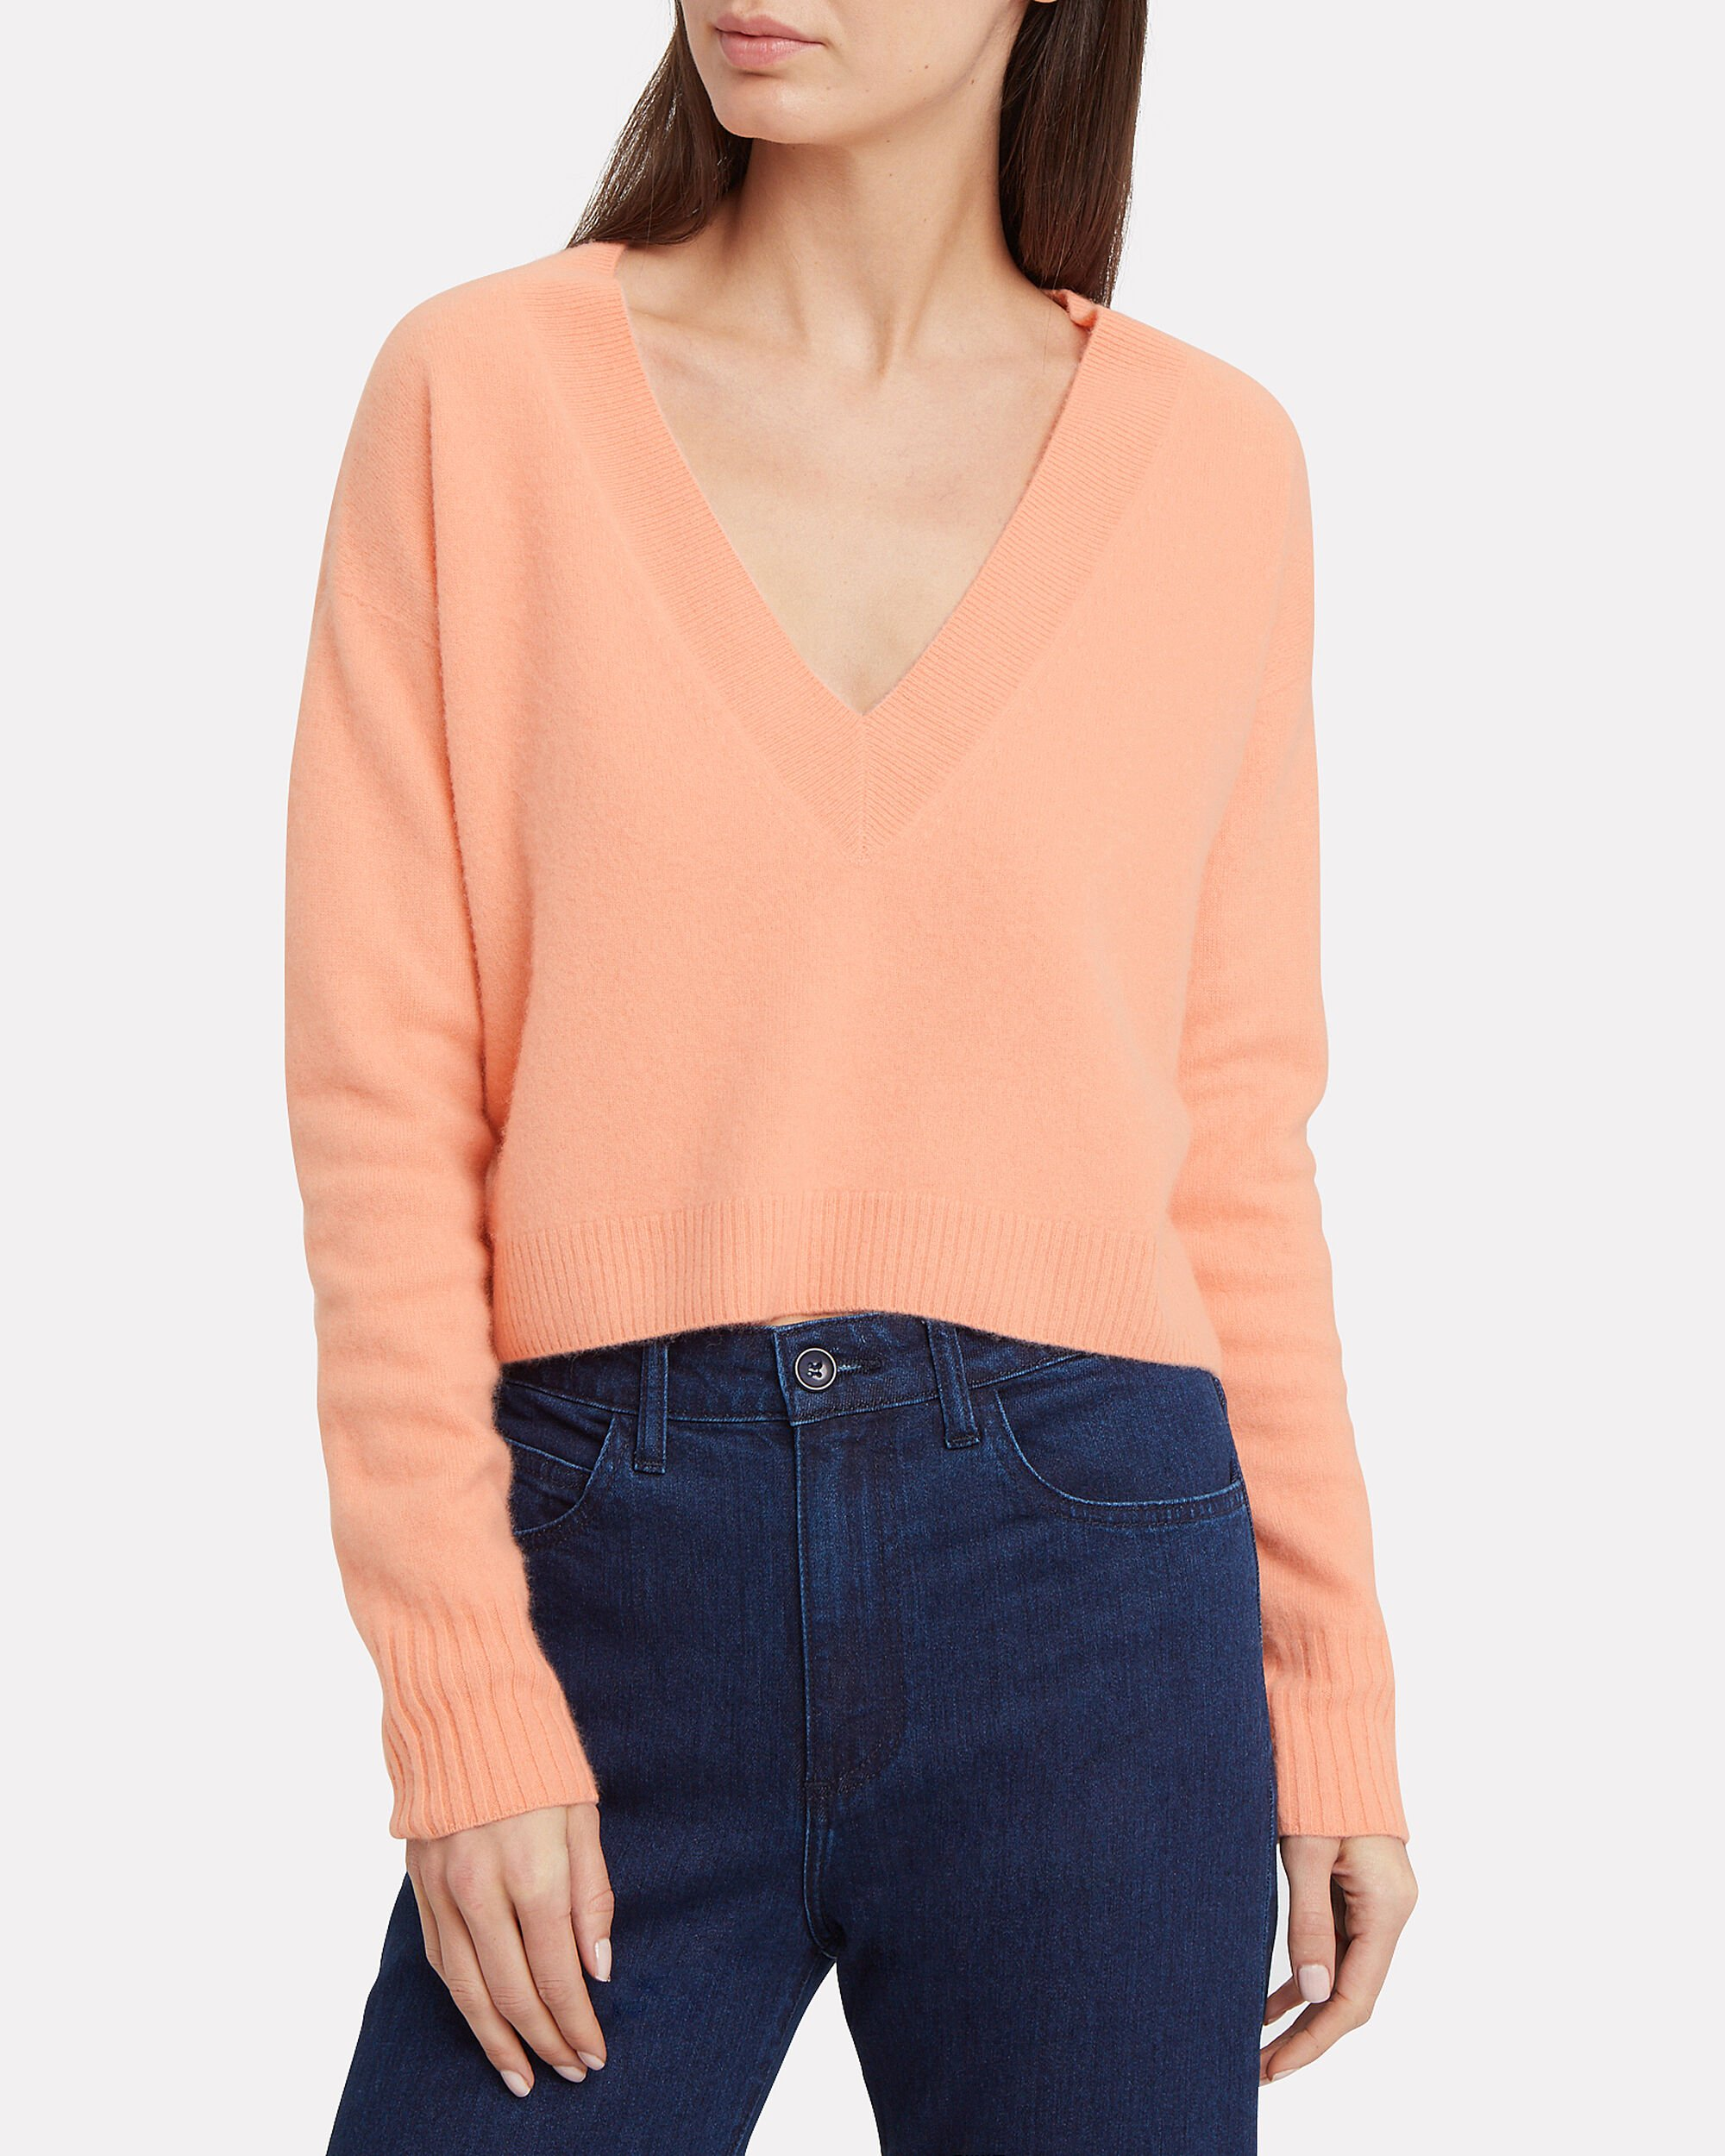 Elroy Cashmere Sweater, CORAL, hi-res